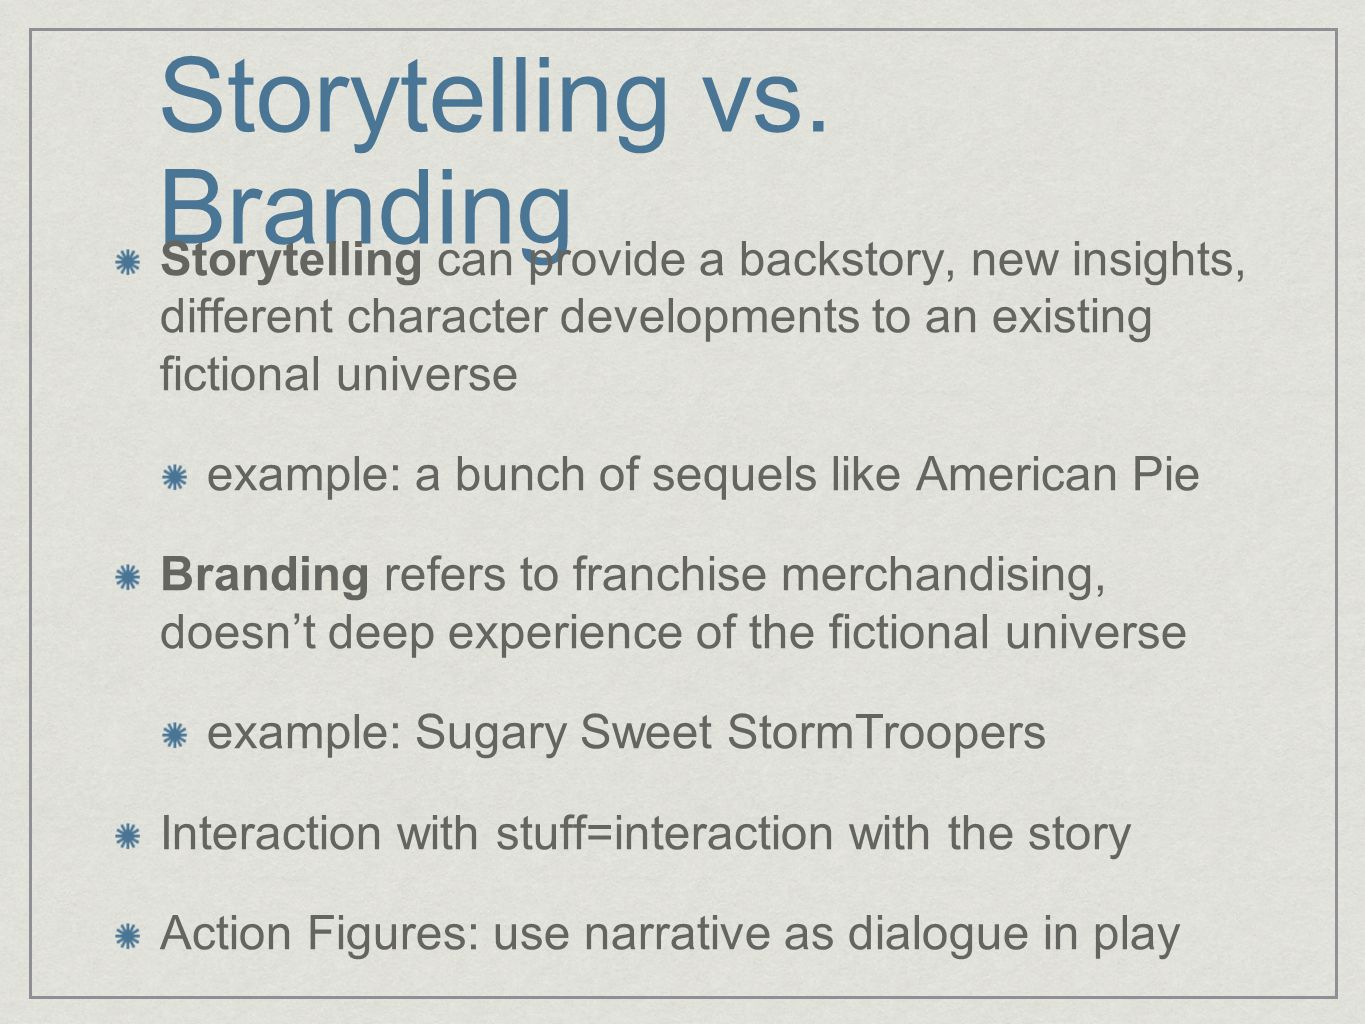 Storytelling vs. Branding Storytelling can provide a backstory, new insights, different character developments to an existing fictional universe examp